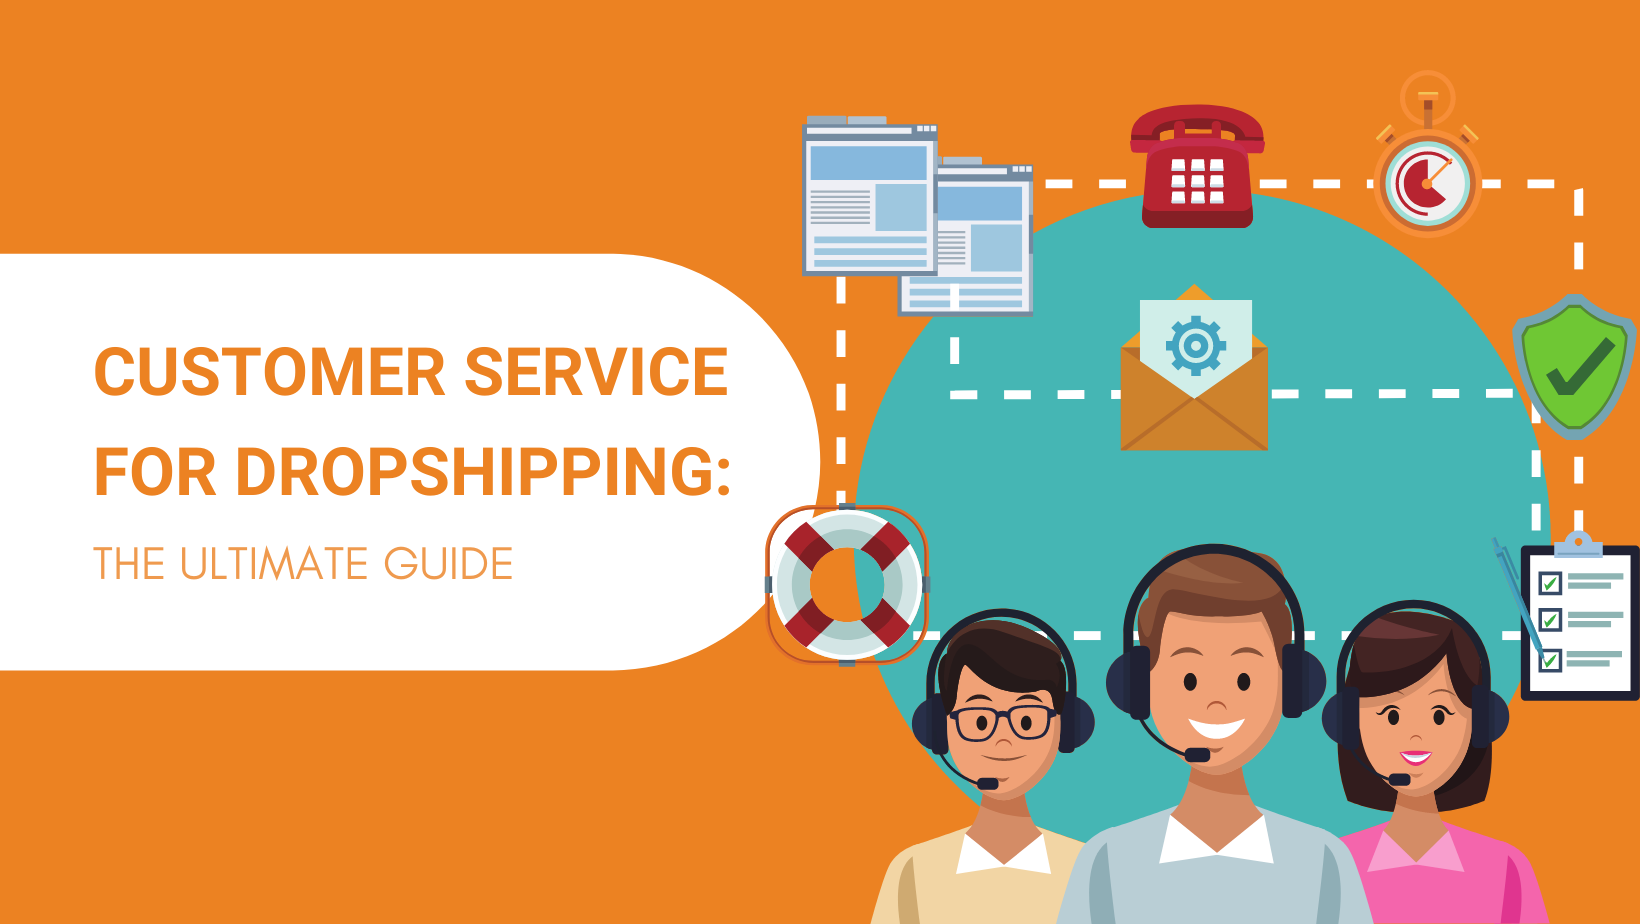 Customer Service for Dropshipping in 2021: The Ultimate Guide